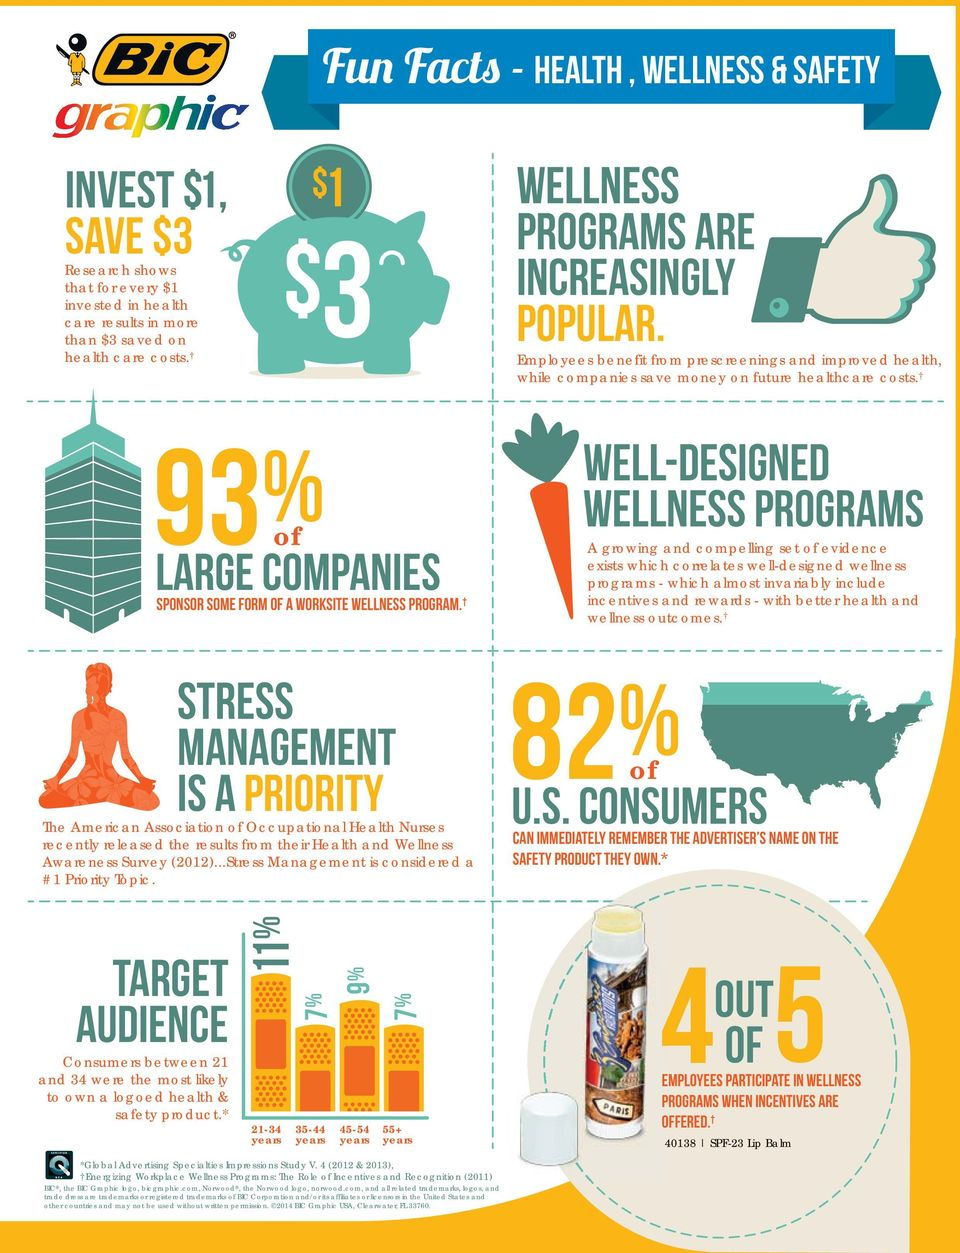 93% large companies sponsor some form a worksite wellness program.